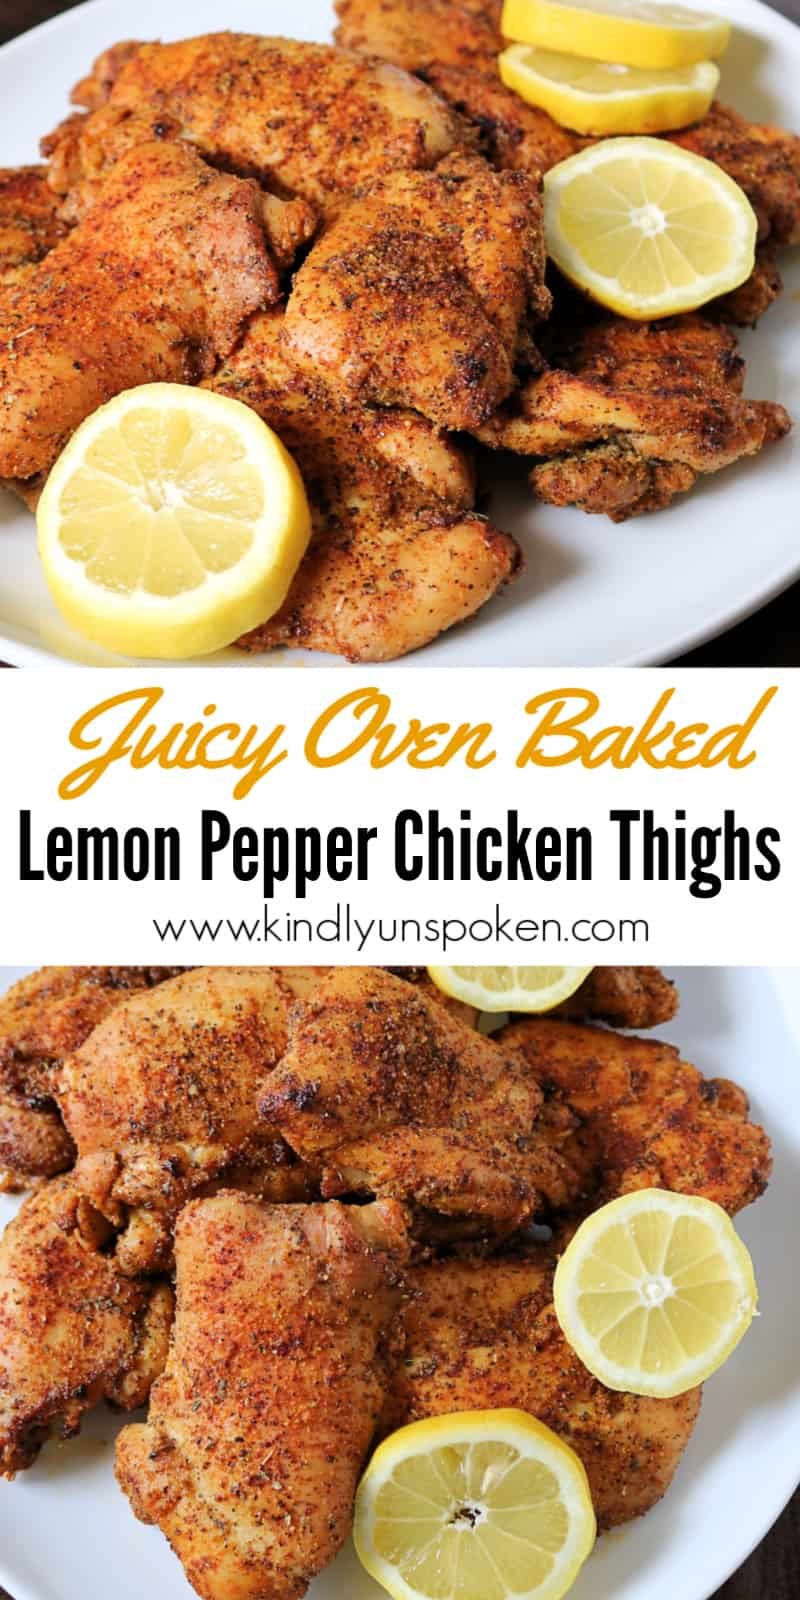 These oven baked lemon pepper chicken thighs are tender, juicy, and delicious! Boneless skinless chicken thighs are seasoned to perfection with a blend of lemon, pepper, garlic, and smoky seasonings, and pair great with rice and veggies, or a salad for a healthy and easy dinner. #lemonpepperchicken #ovenchicken #bakedchicken #chickenthighs #chicken